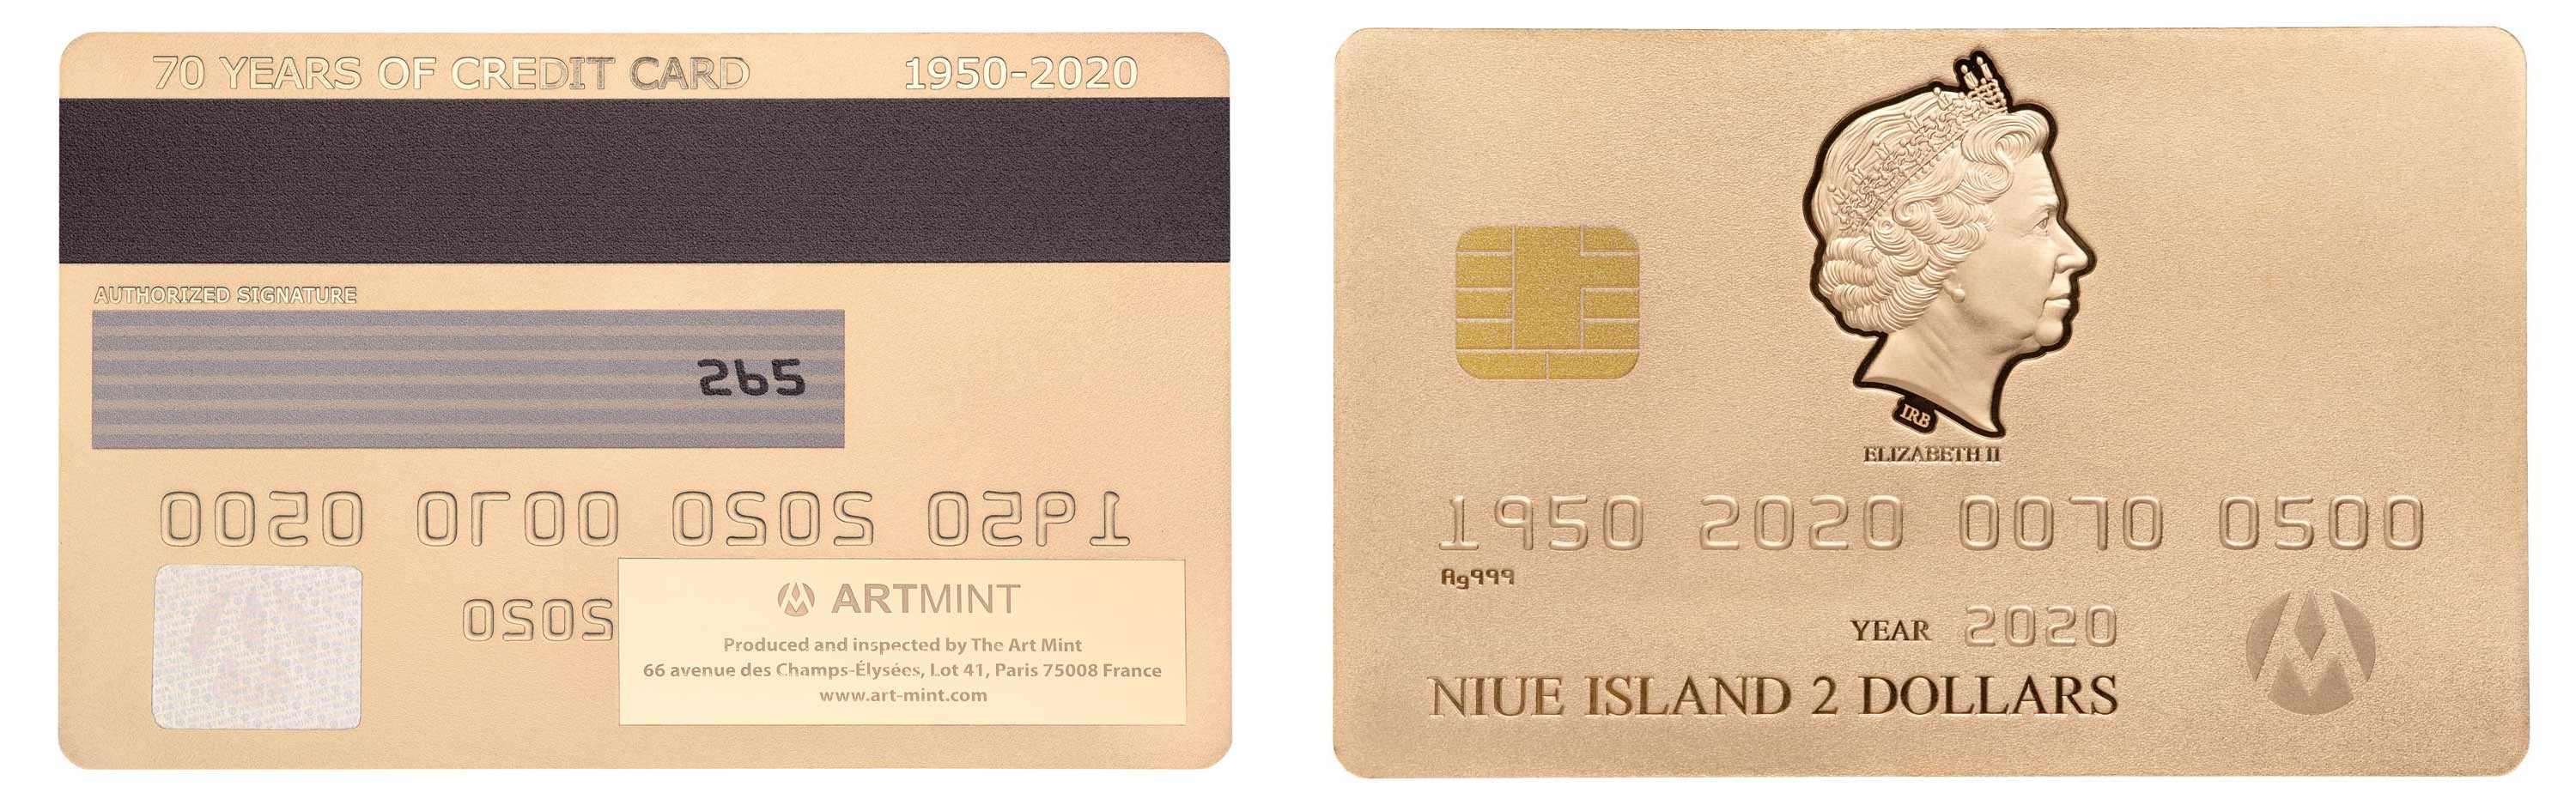 niue-2020-70-ans-de-la-carte-de-credit-plaq-or